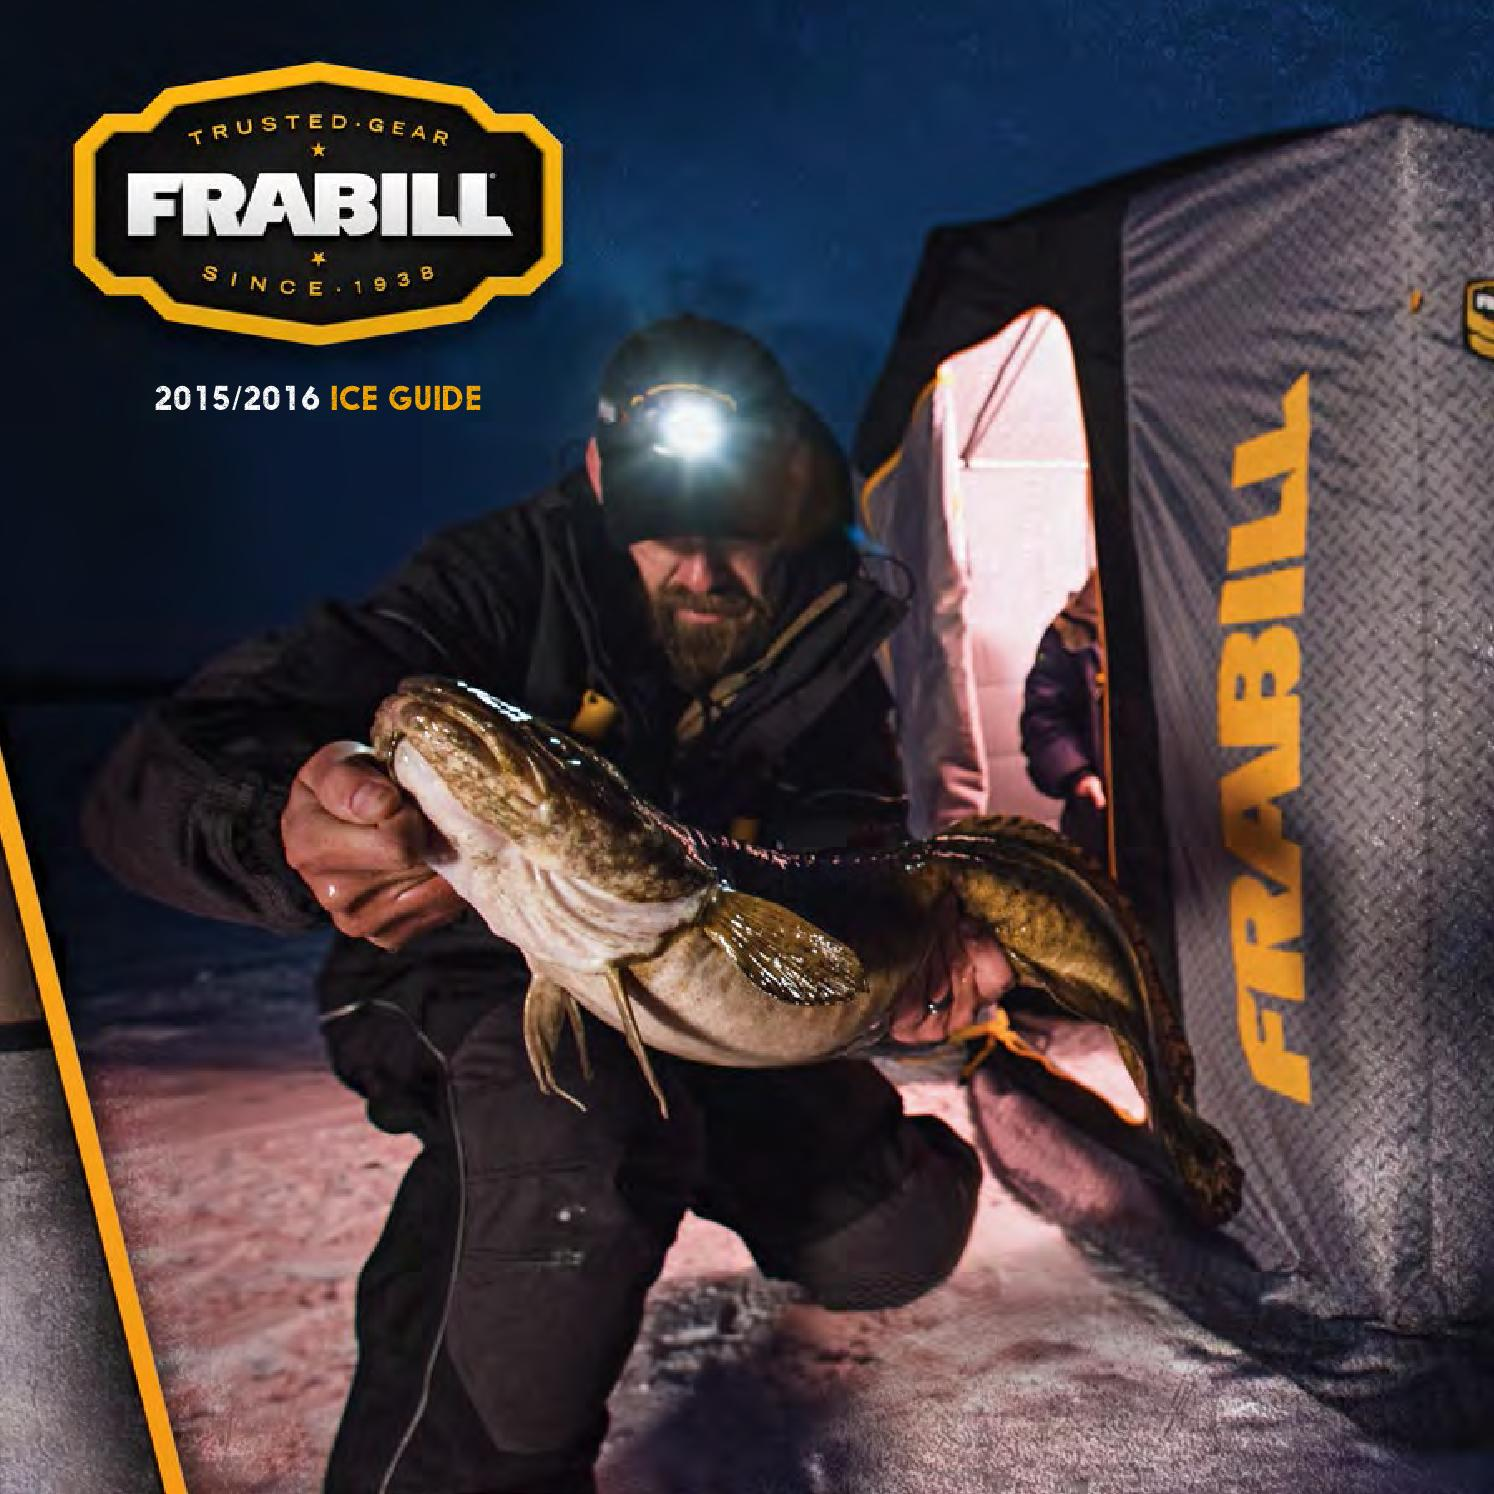 Frabill ice fishing 2016 product guide by planosynergy issuu for Frabill ice fishing